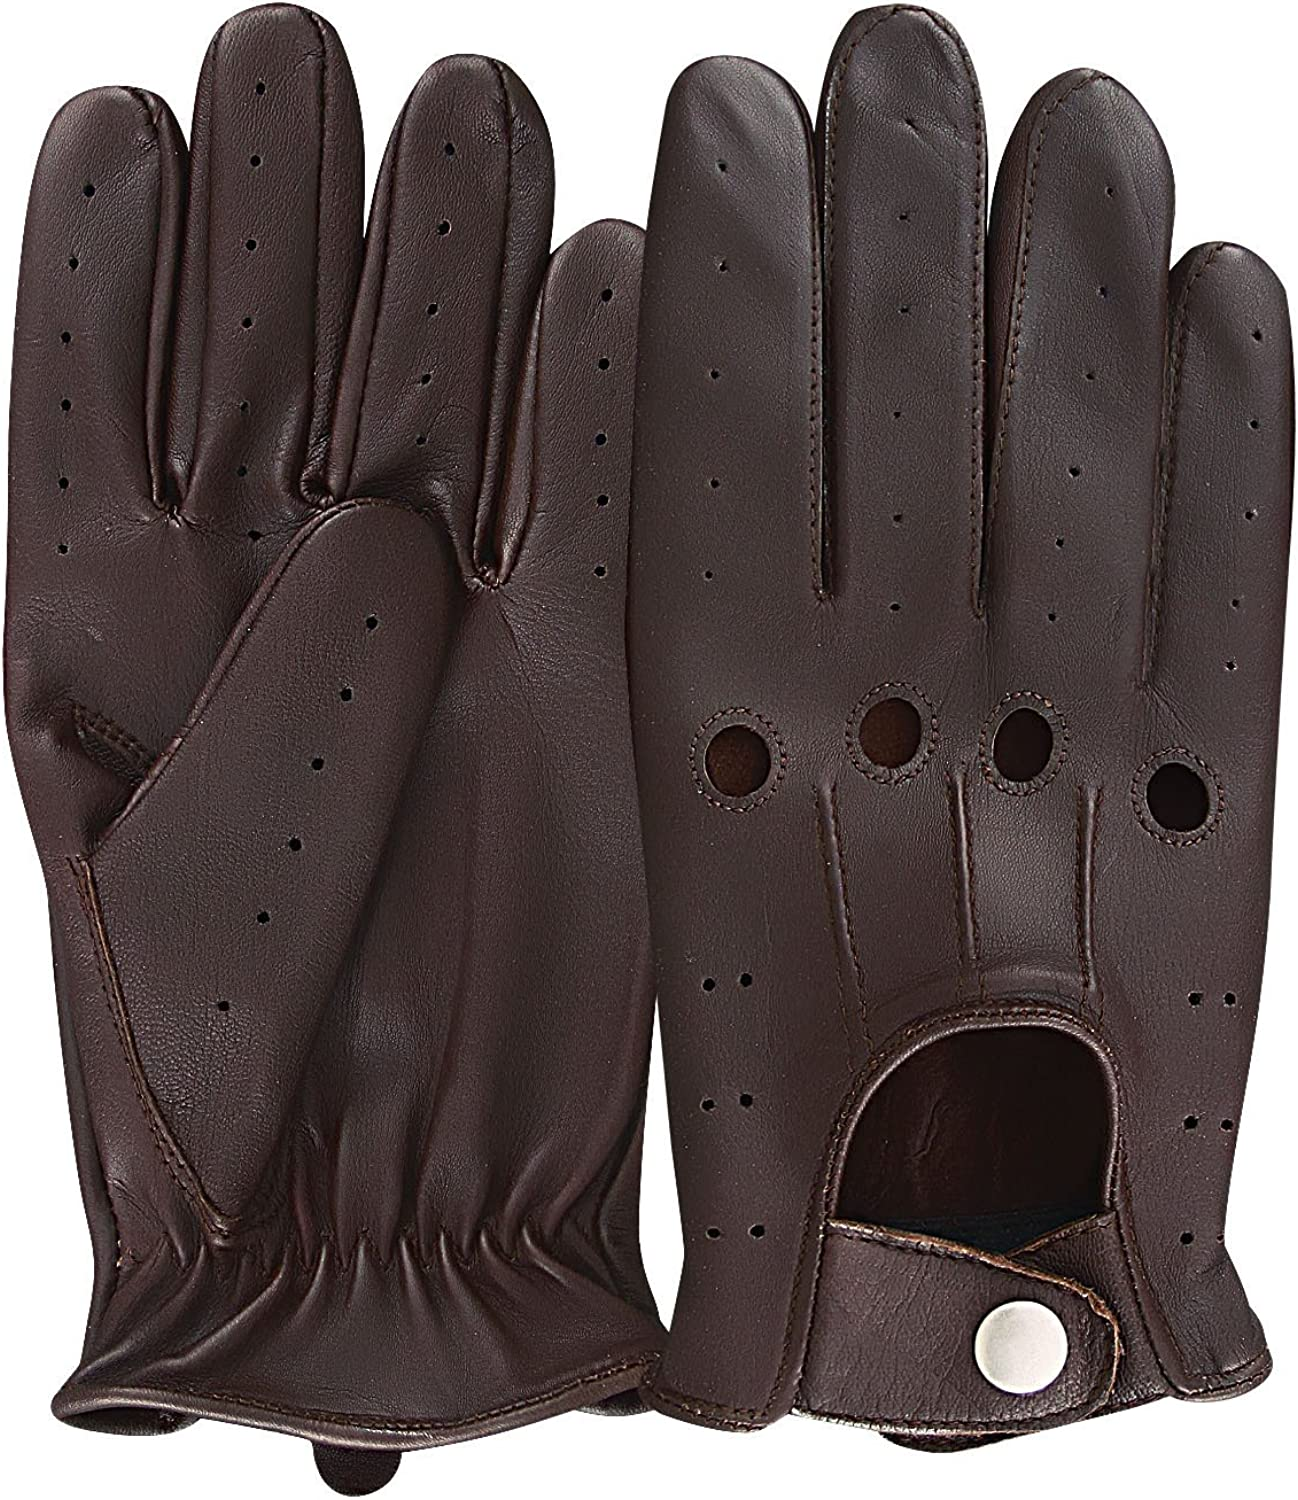 Mens Classic Driving Gloves Vintage Button Style Soft Lambskin Leather Dress Fashion